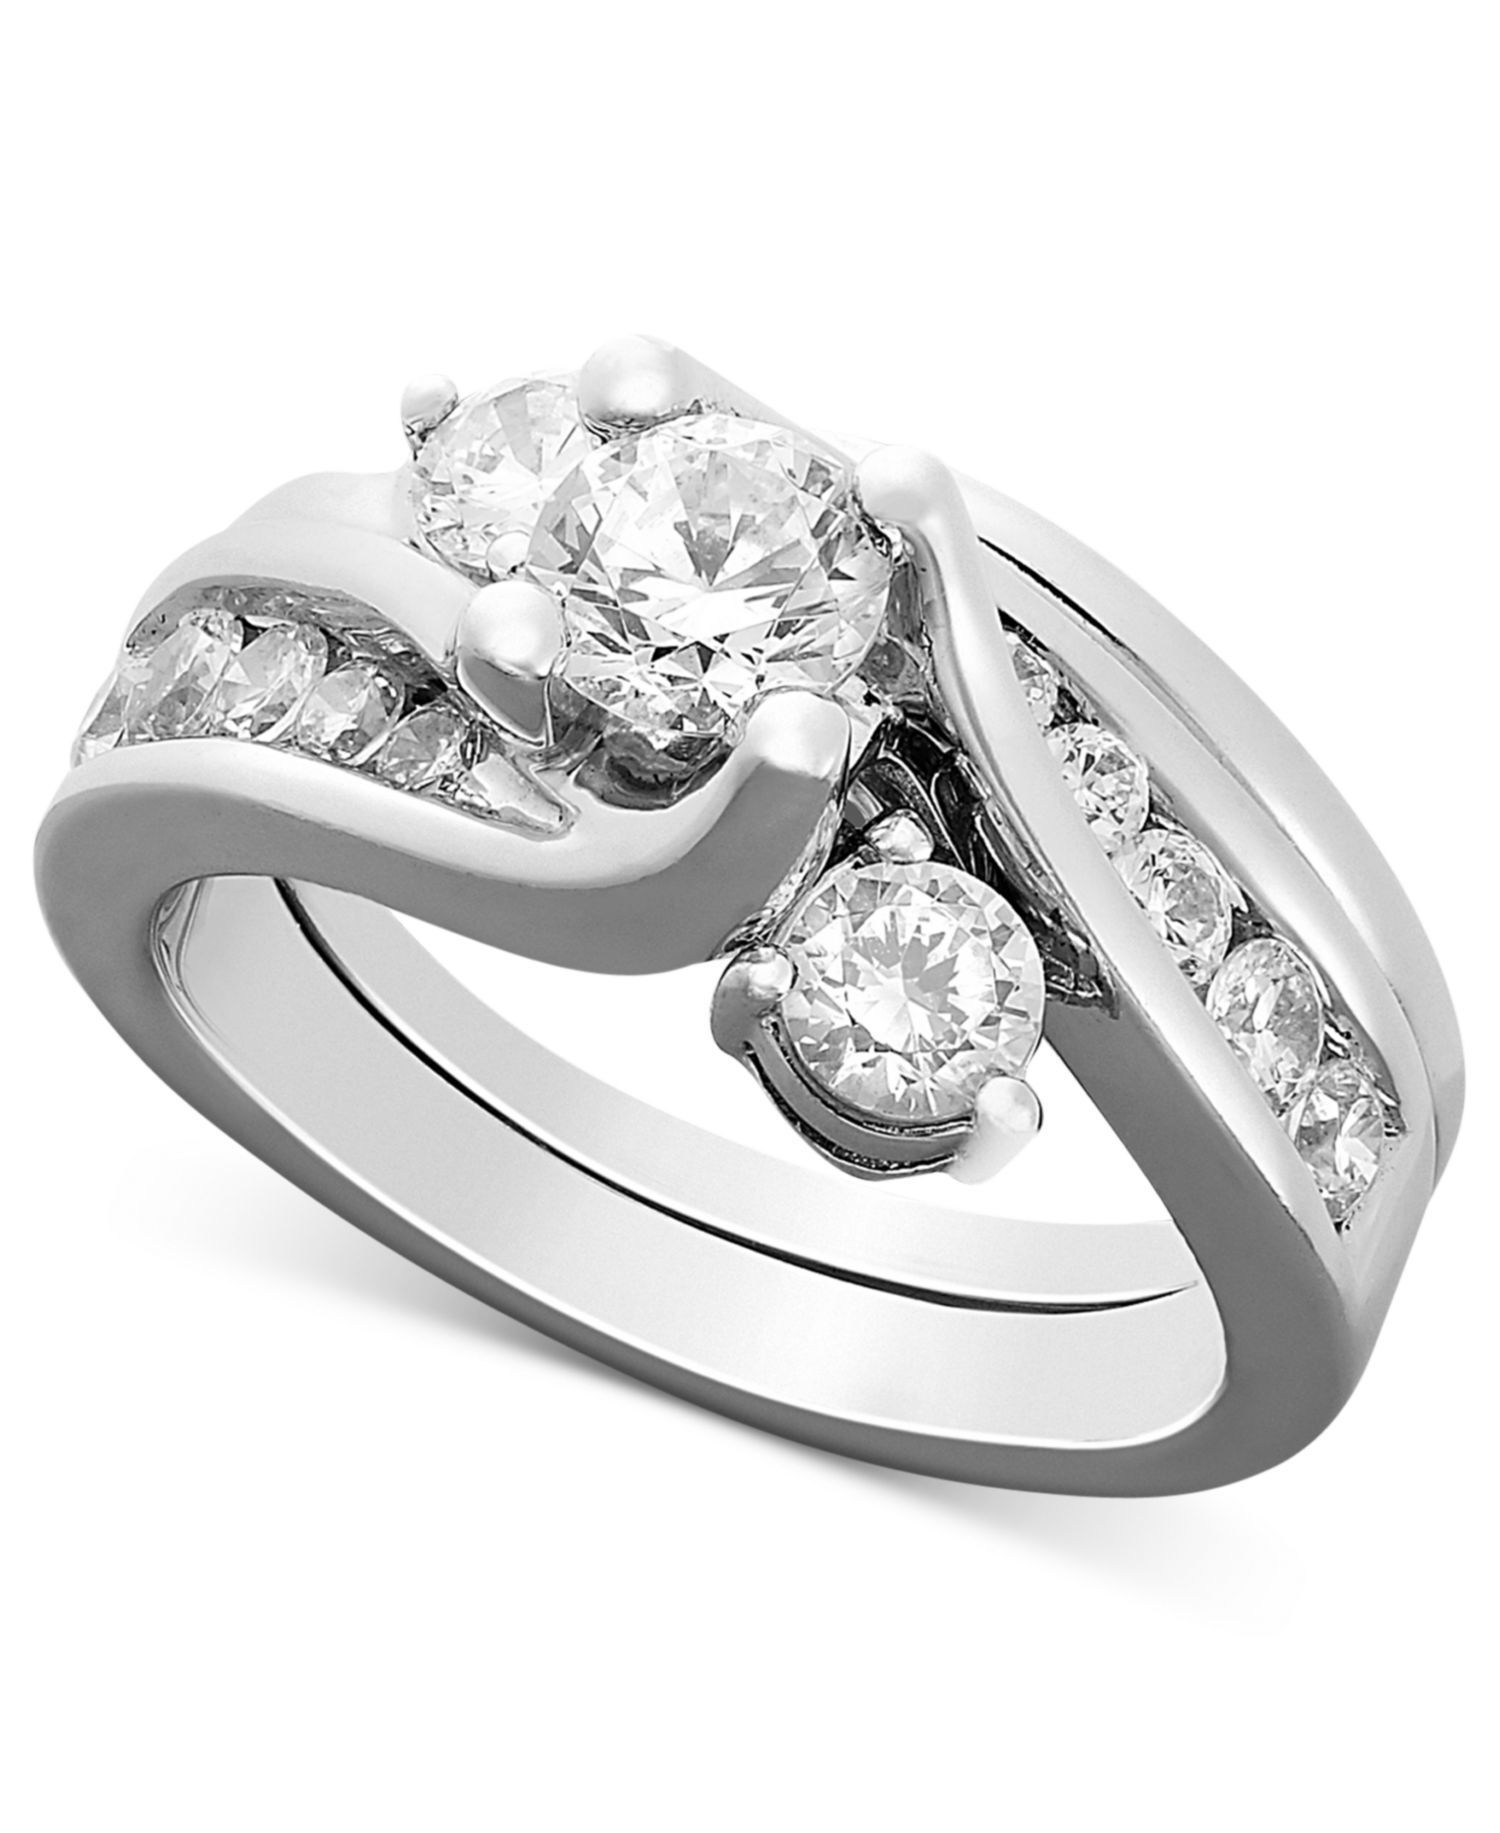 Certified Diamond Bridal Set Ring in 14k White Gold (1-1/2 ct. t.w.) by Macy's on HeartThis